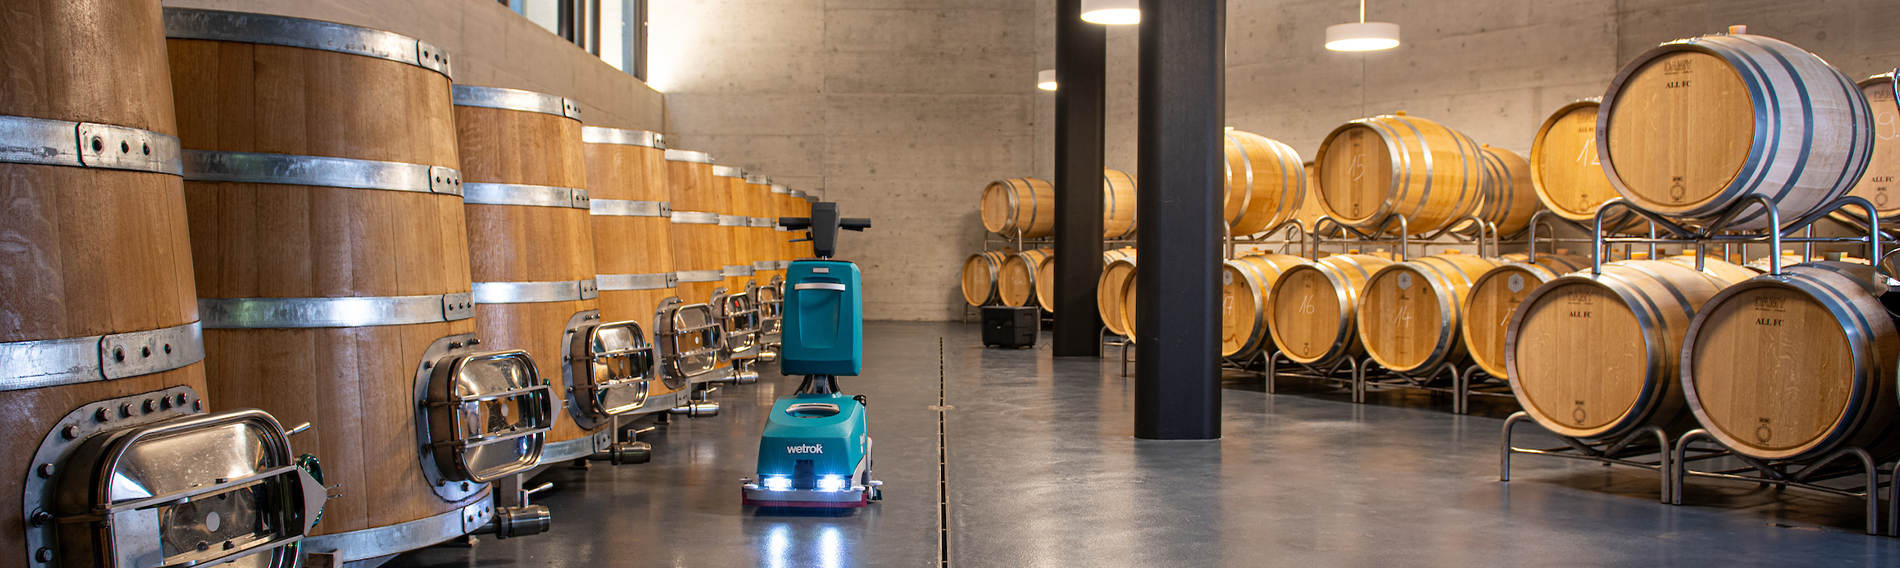 Winemaker tests new scrubber-dryer